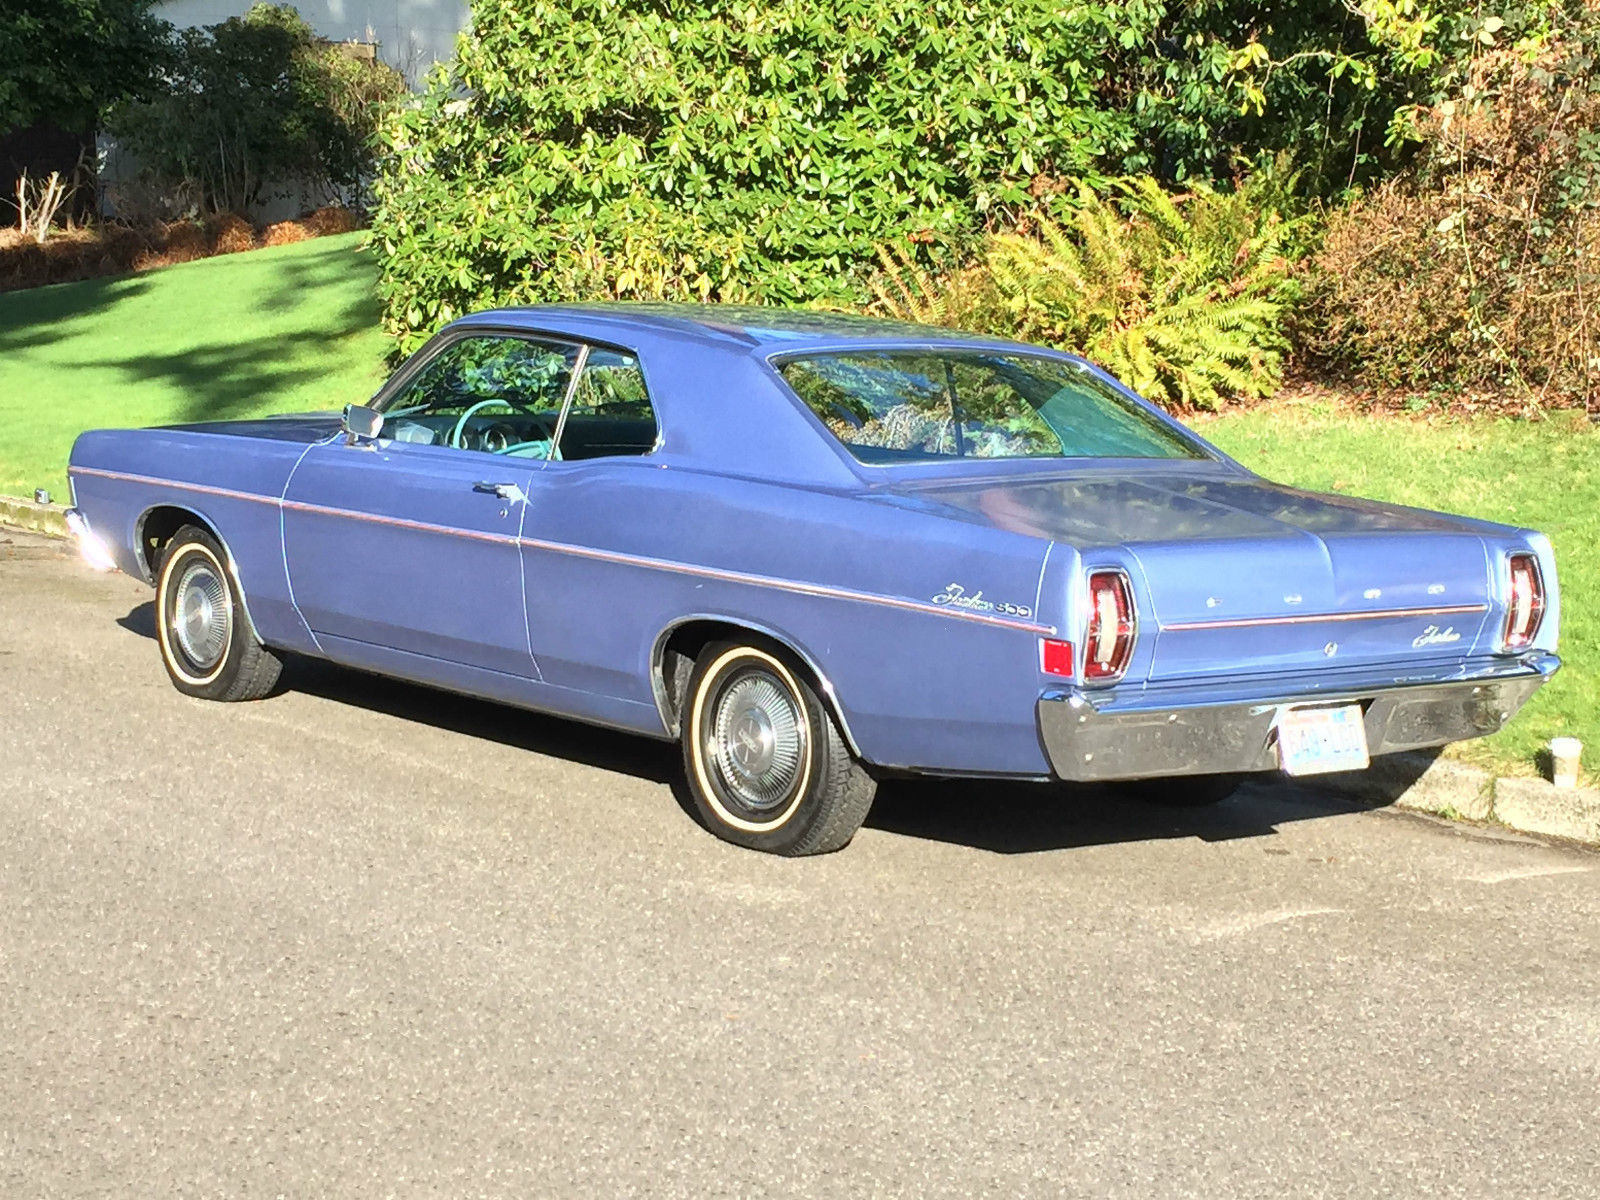 Titus Will Tacoma >> 1968 Ford Fairlane 500 Hardtop Coupe 2dr - 8-cyl. 289cid ...